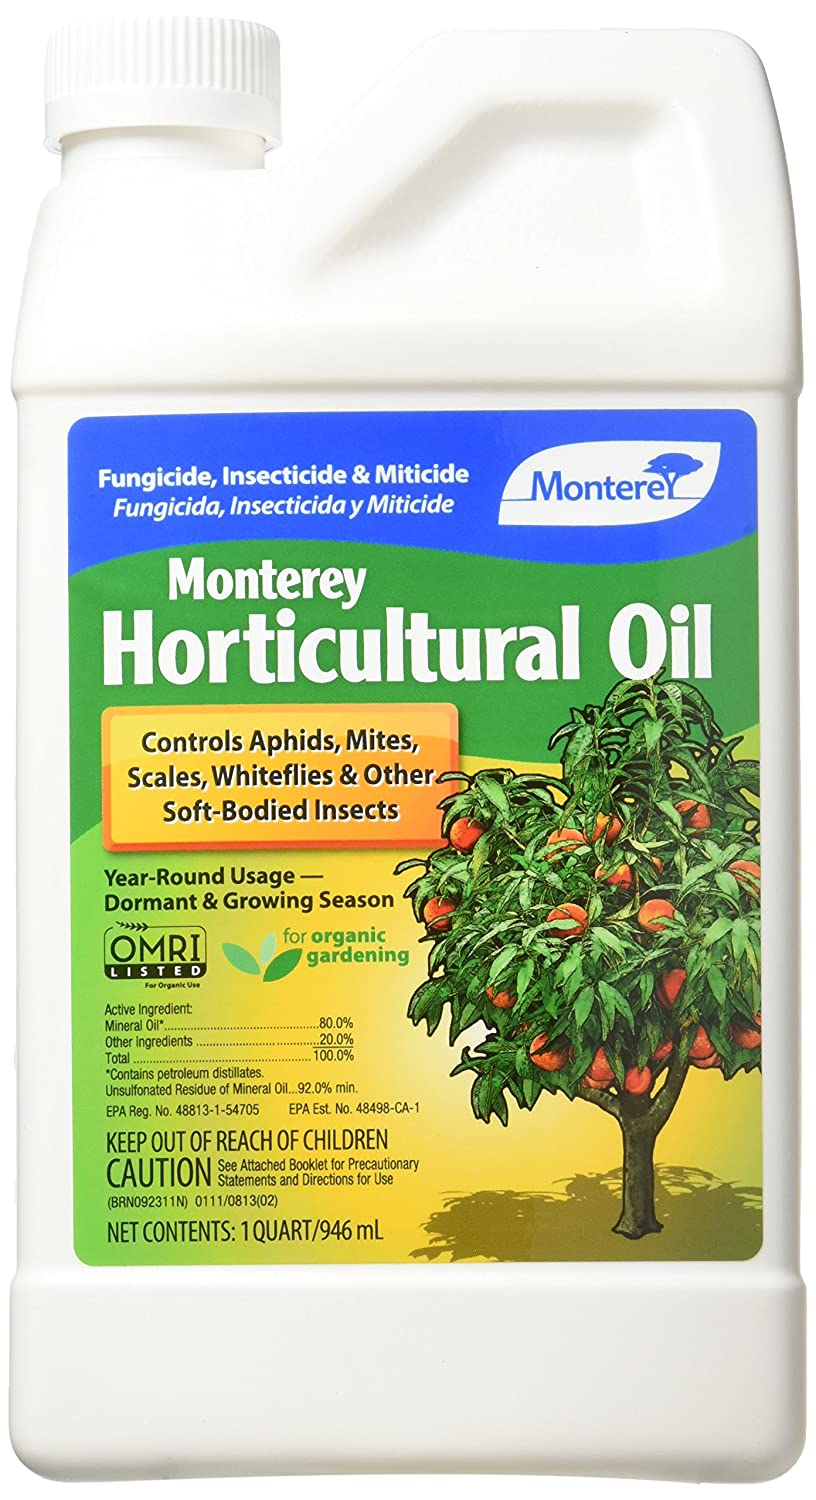 Horticultural Oil for fighting citrus pests